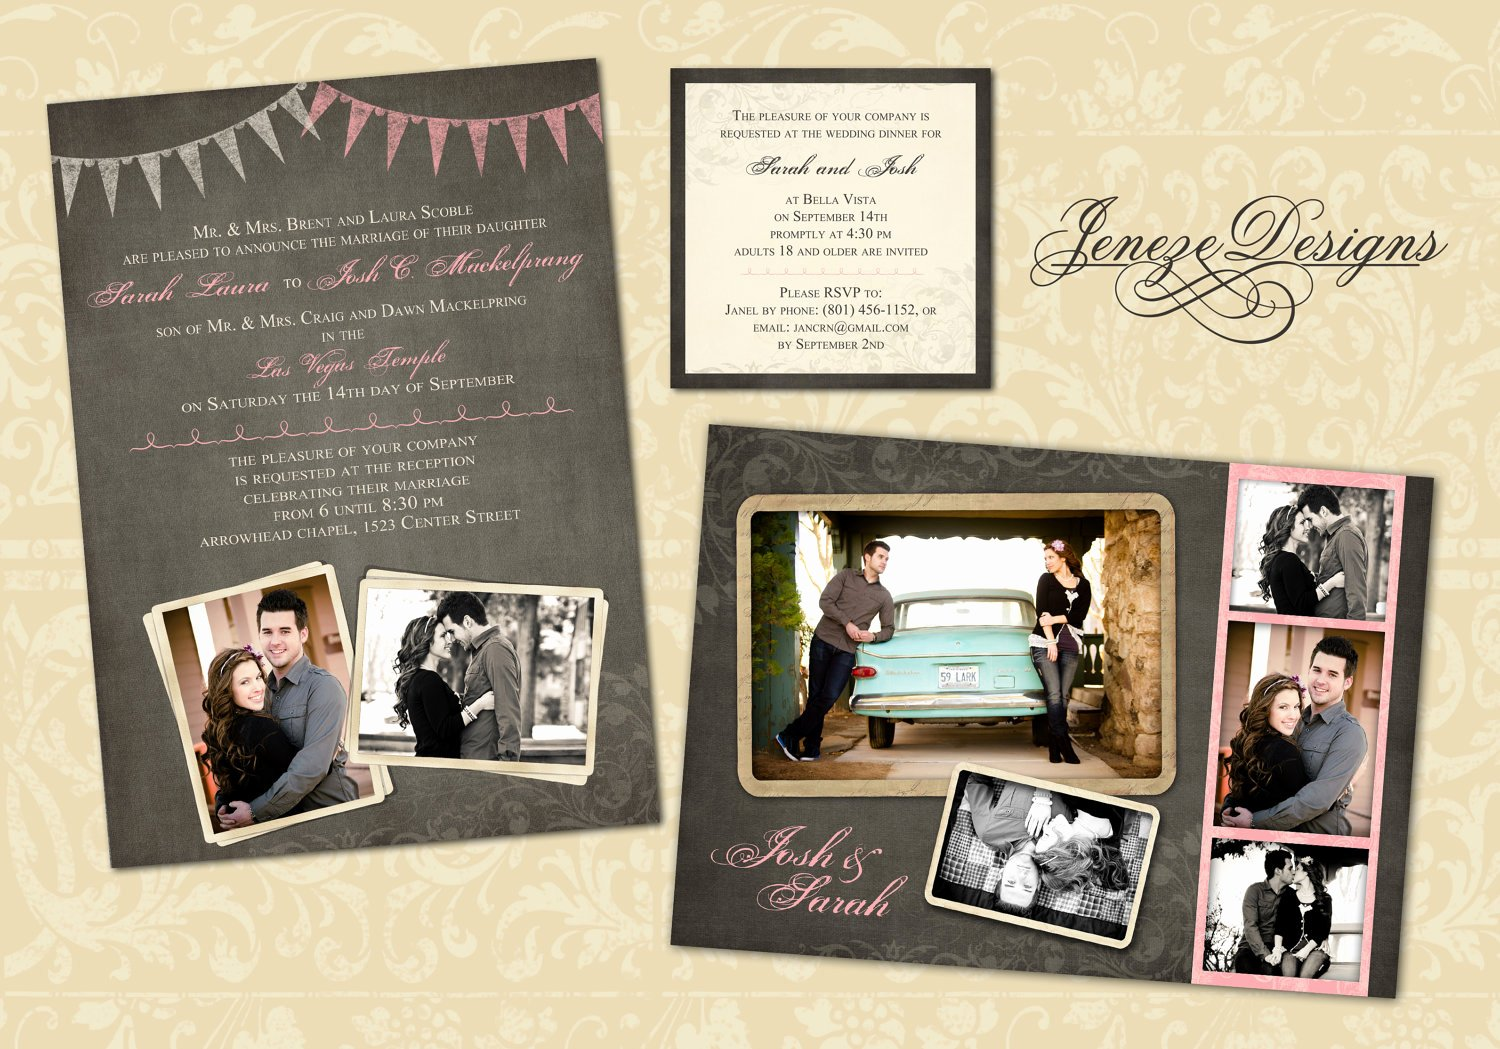 Wedding Invitations Photoshop Template Beautiful Wedding Invitation Template Graphers and Shop